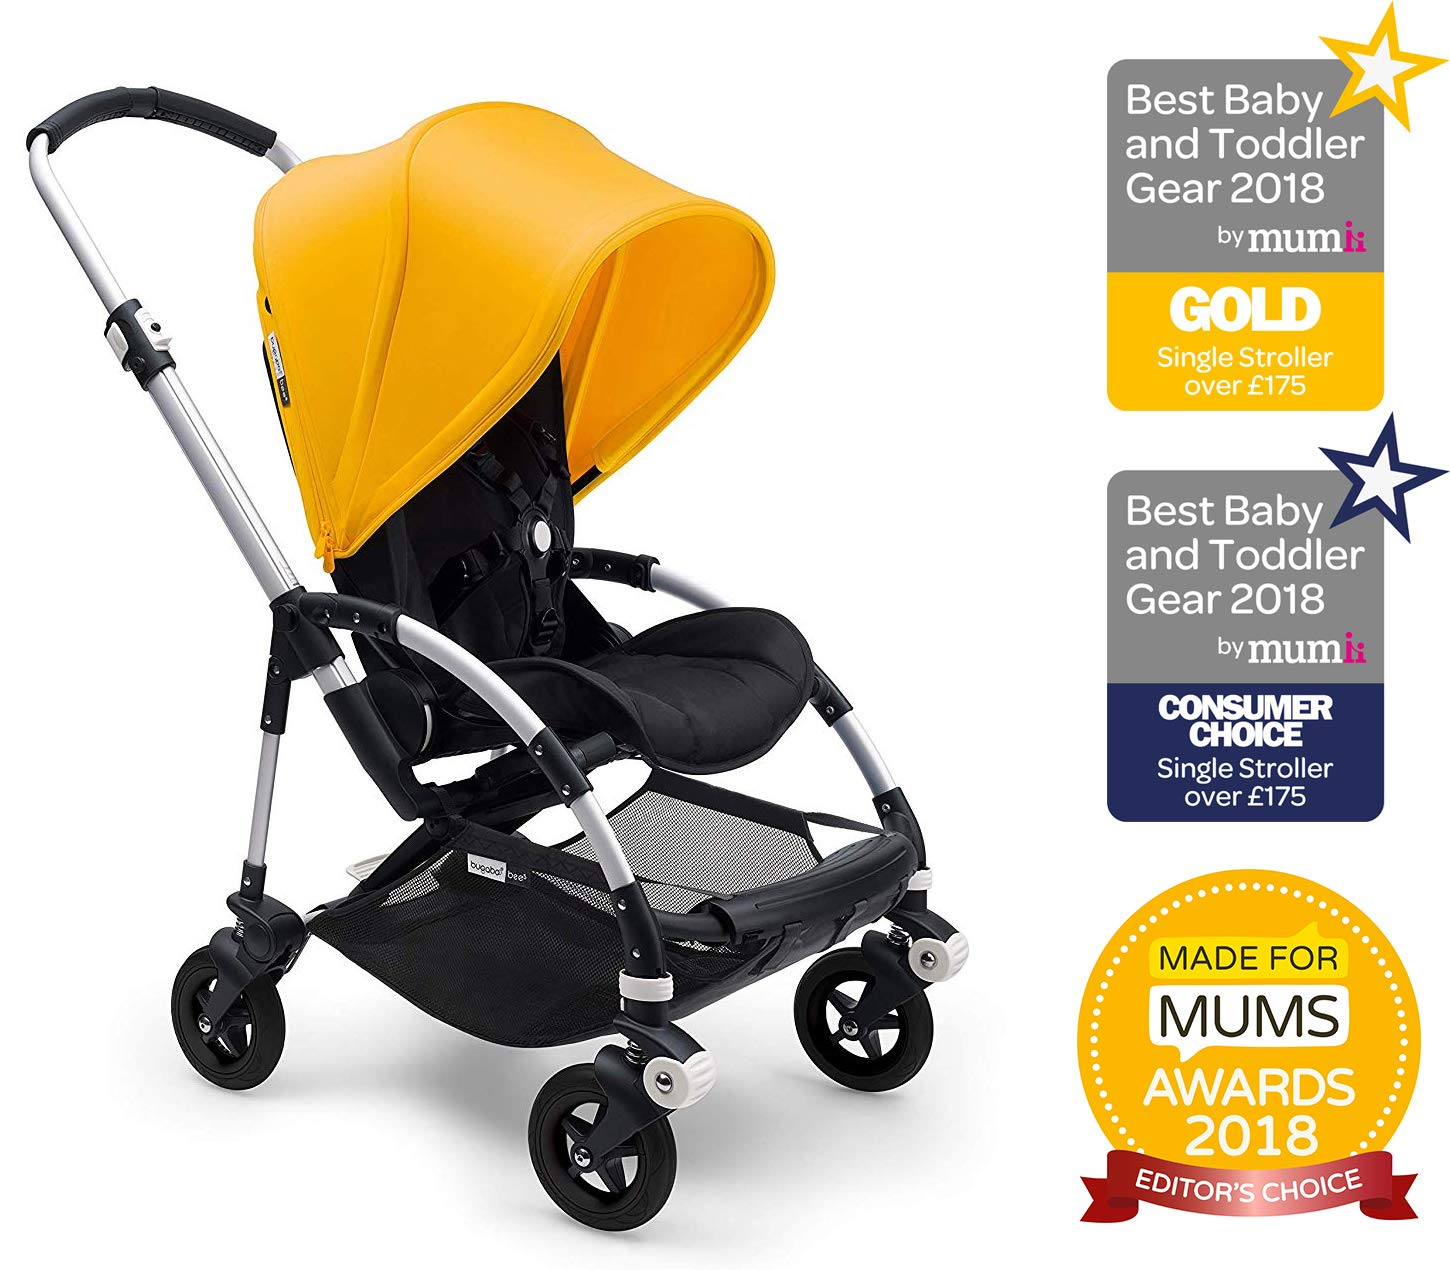 Bugaboo Bee 5, Foldable and Lightweight Pushchair, Converts Into Pram, Black/Sunrise Yellow Bugaboo The perfect choice for travel and city living Use a cocoon or carrycot to convert into a pram for newborns (both sold separately) Compatible with a wide range of car seats (please see list below) 2